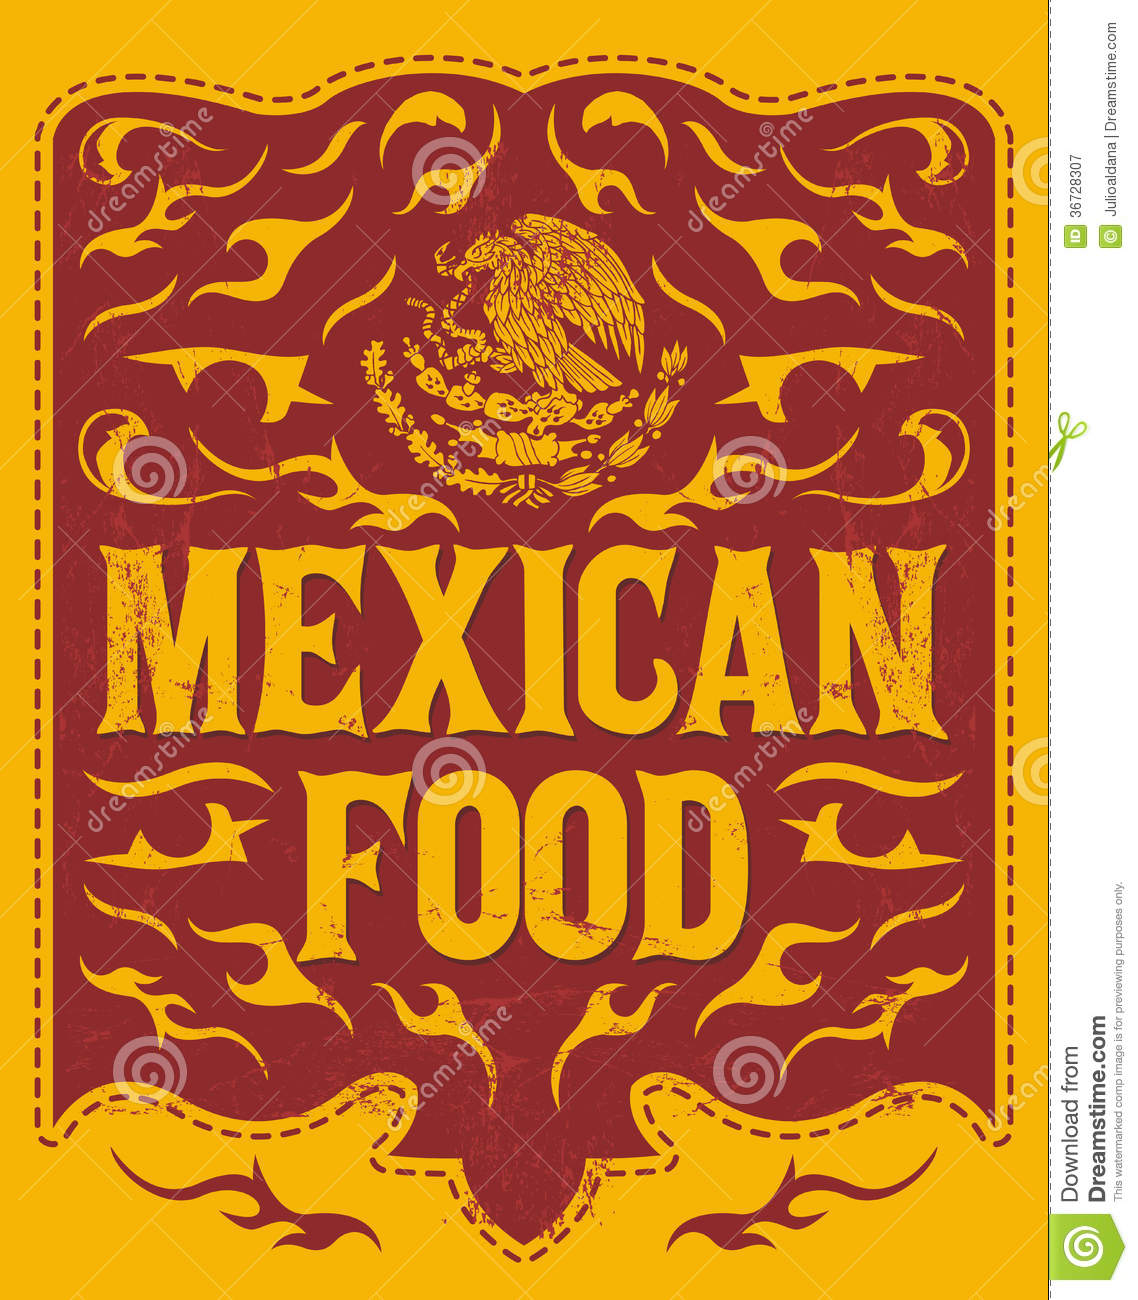 mexican food menu design illustration 36728307 - megapixl